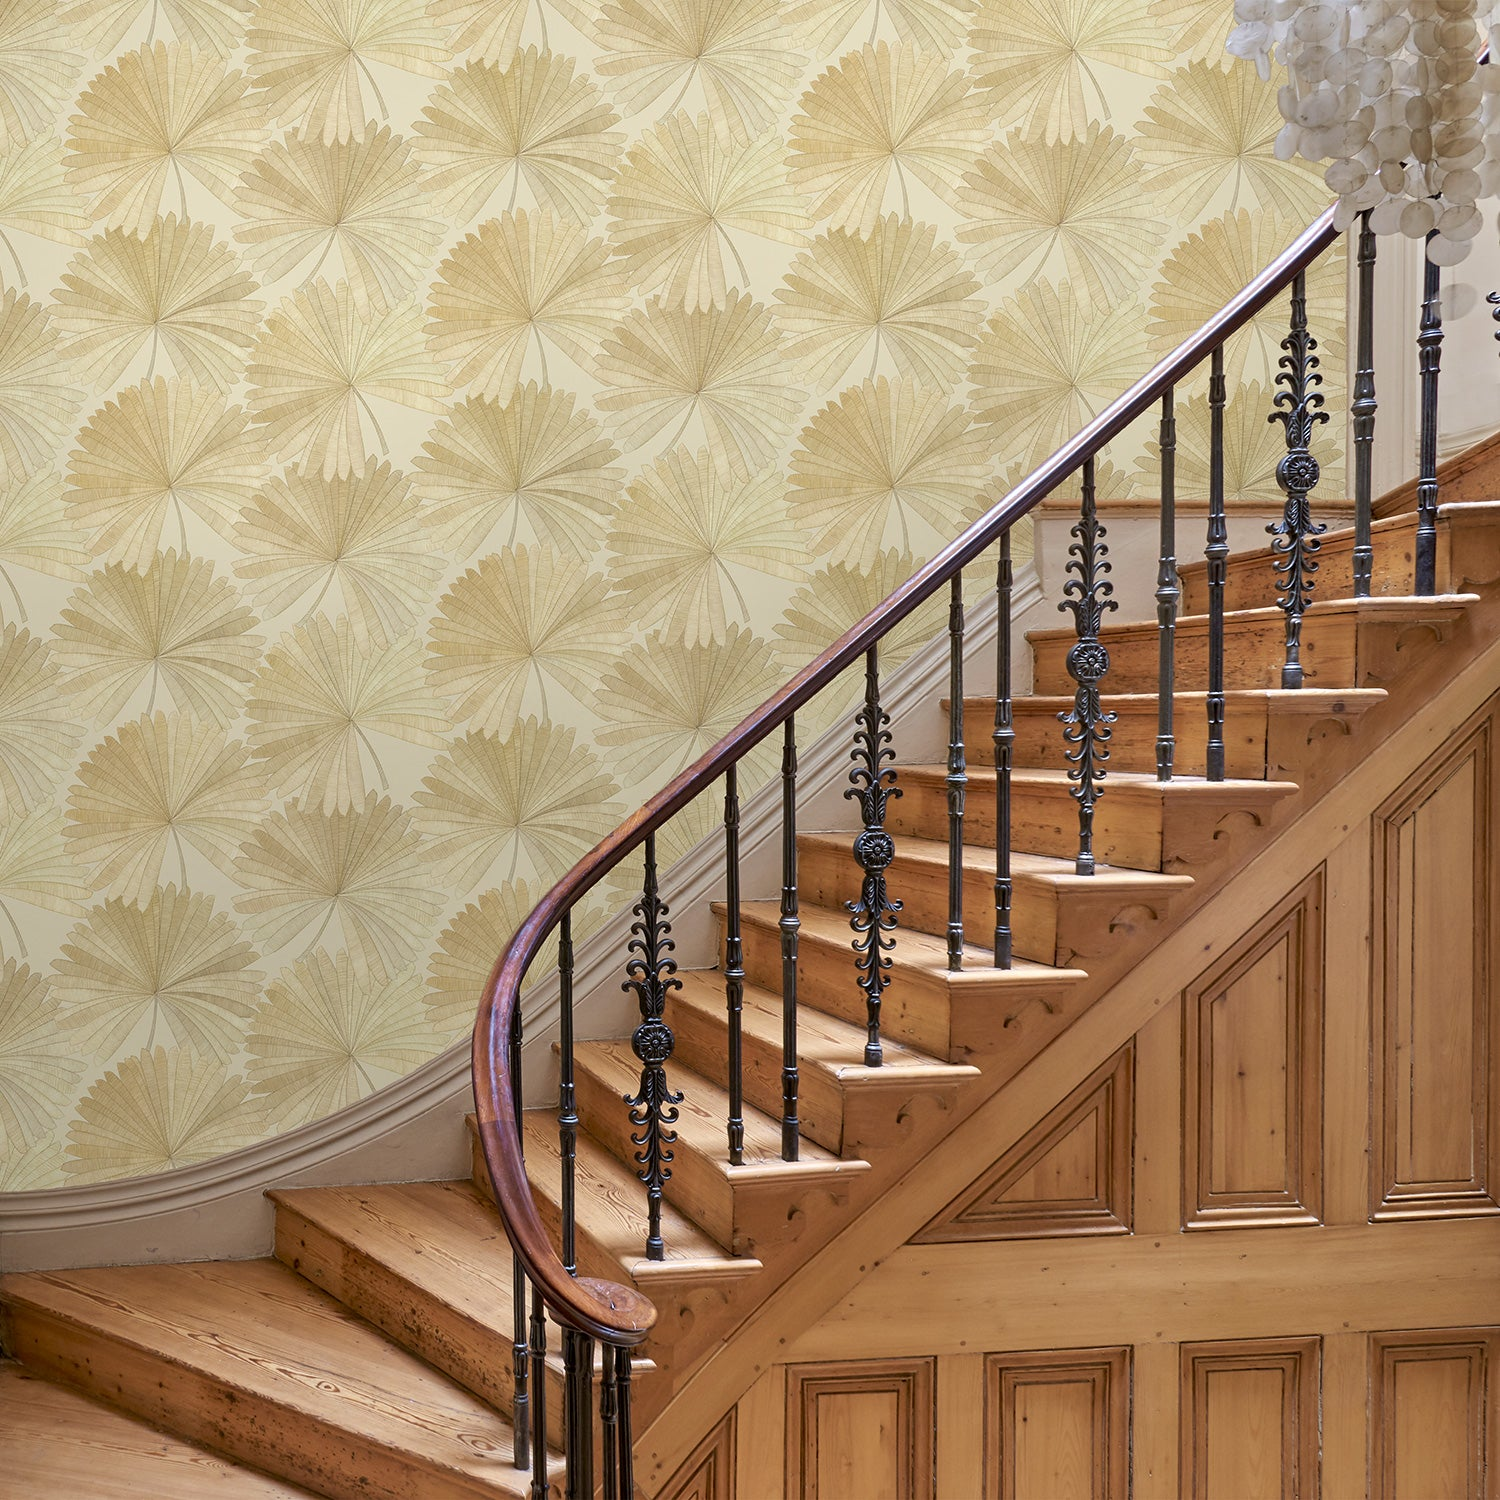 Hallway featuring a Wallpaper in neutral colours with a tropical palm leaf design